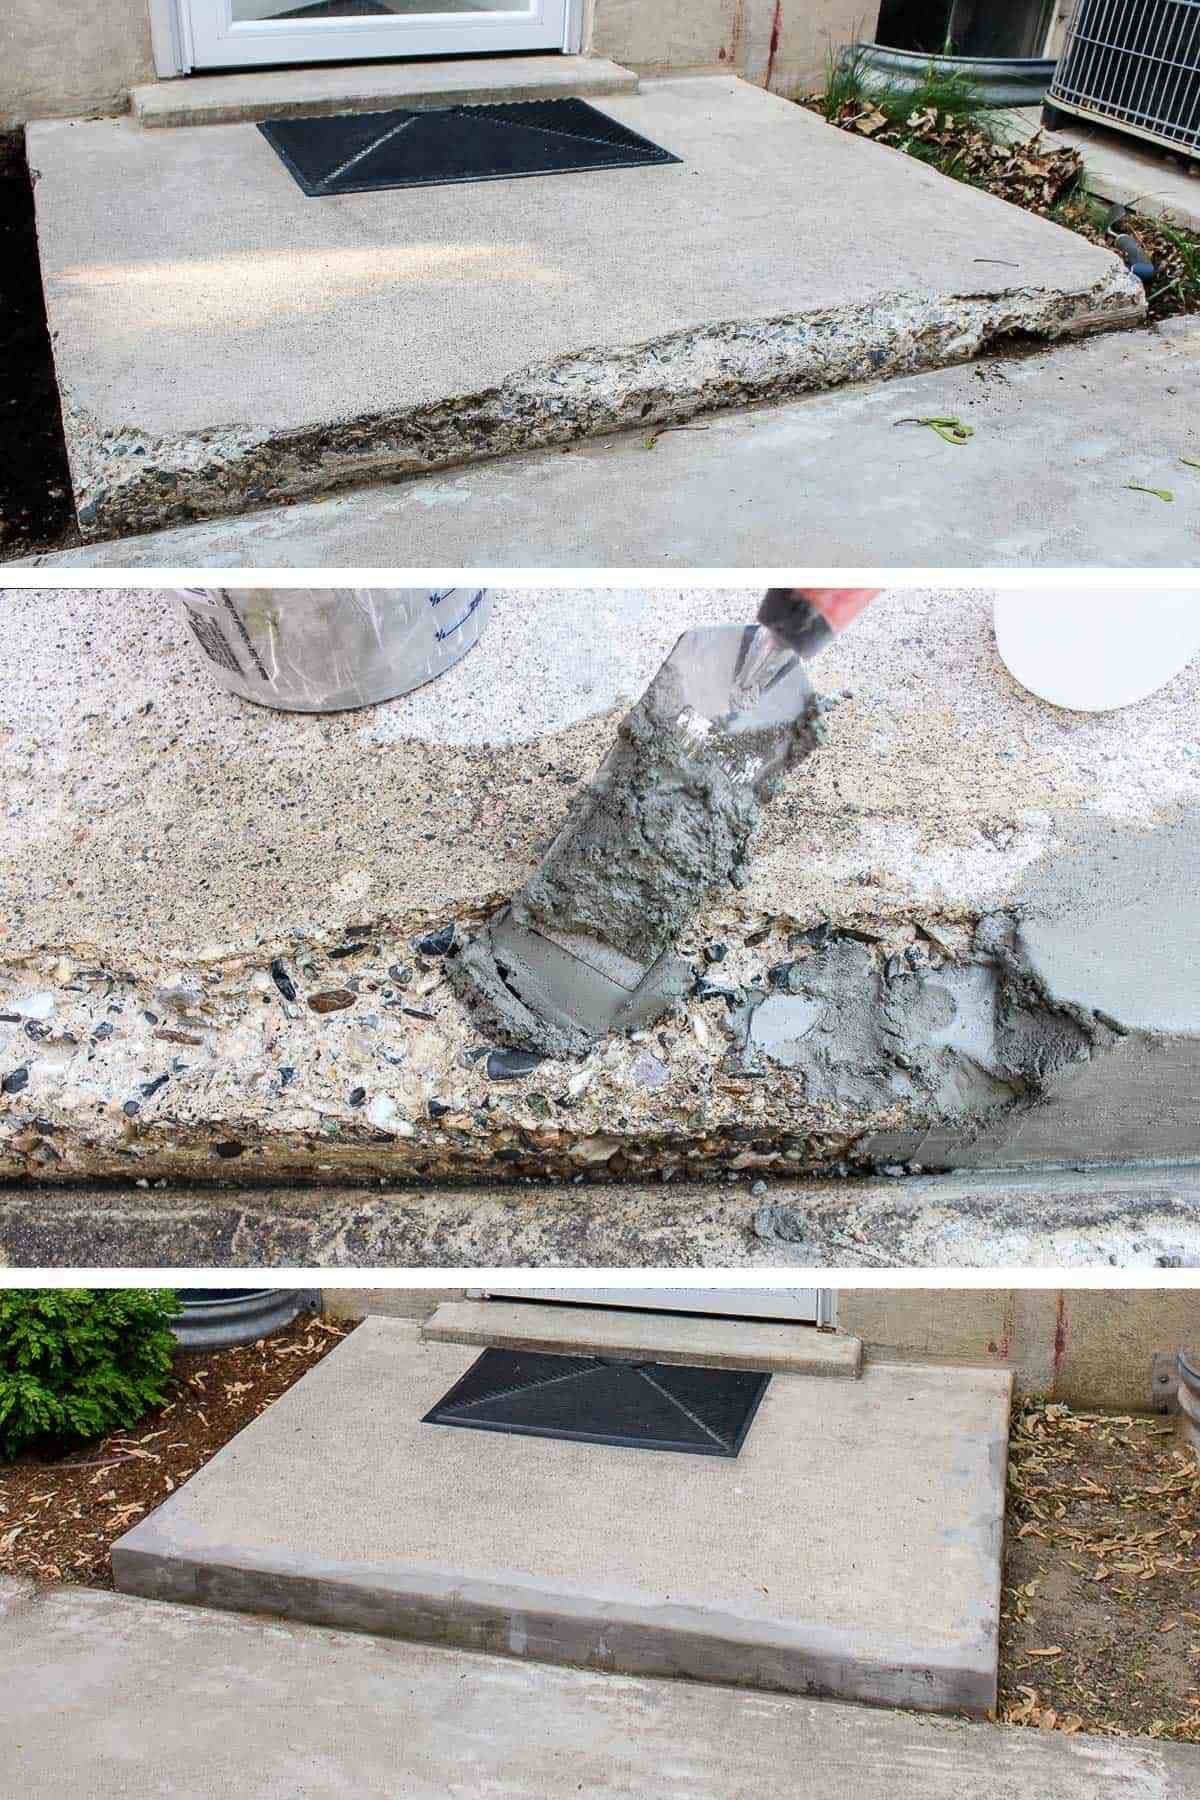 How to Fix Chipped Concrete Steps is part of home Improvement Exterior - Does your home need a little curb appeal  Maybe you need to fix chipped concrete steps  Here is a simple stepbystep process to repair concrete steps